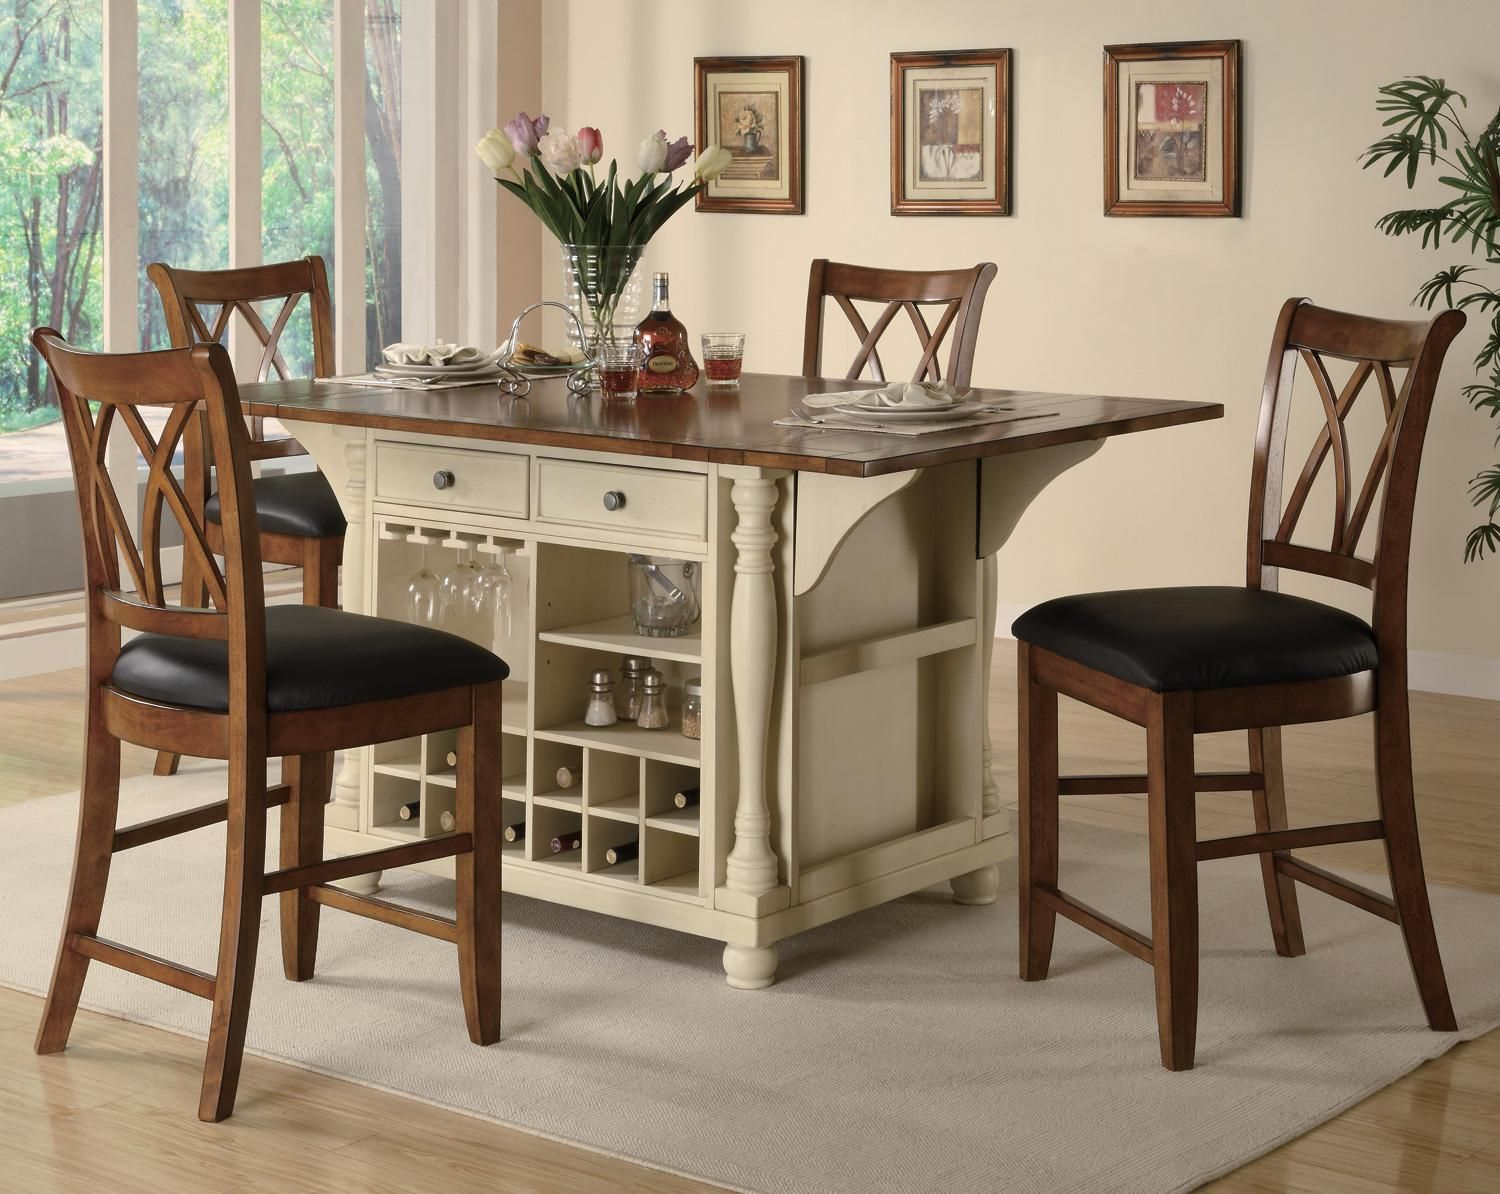 Kitchen Table And Chairs Sets Modern Rug Tall Dinette